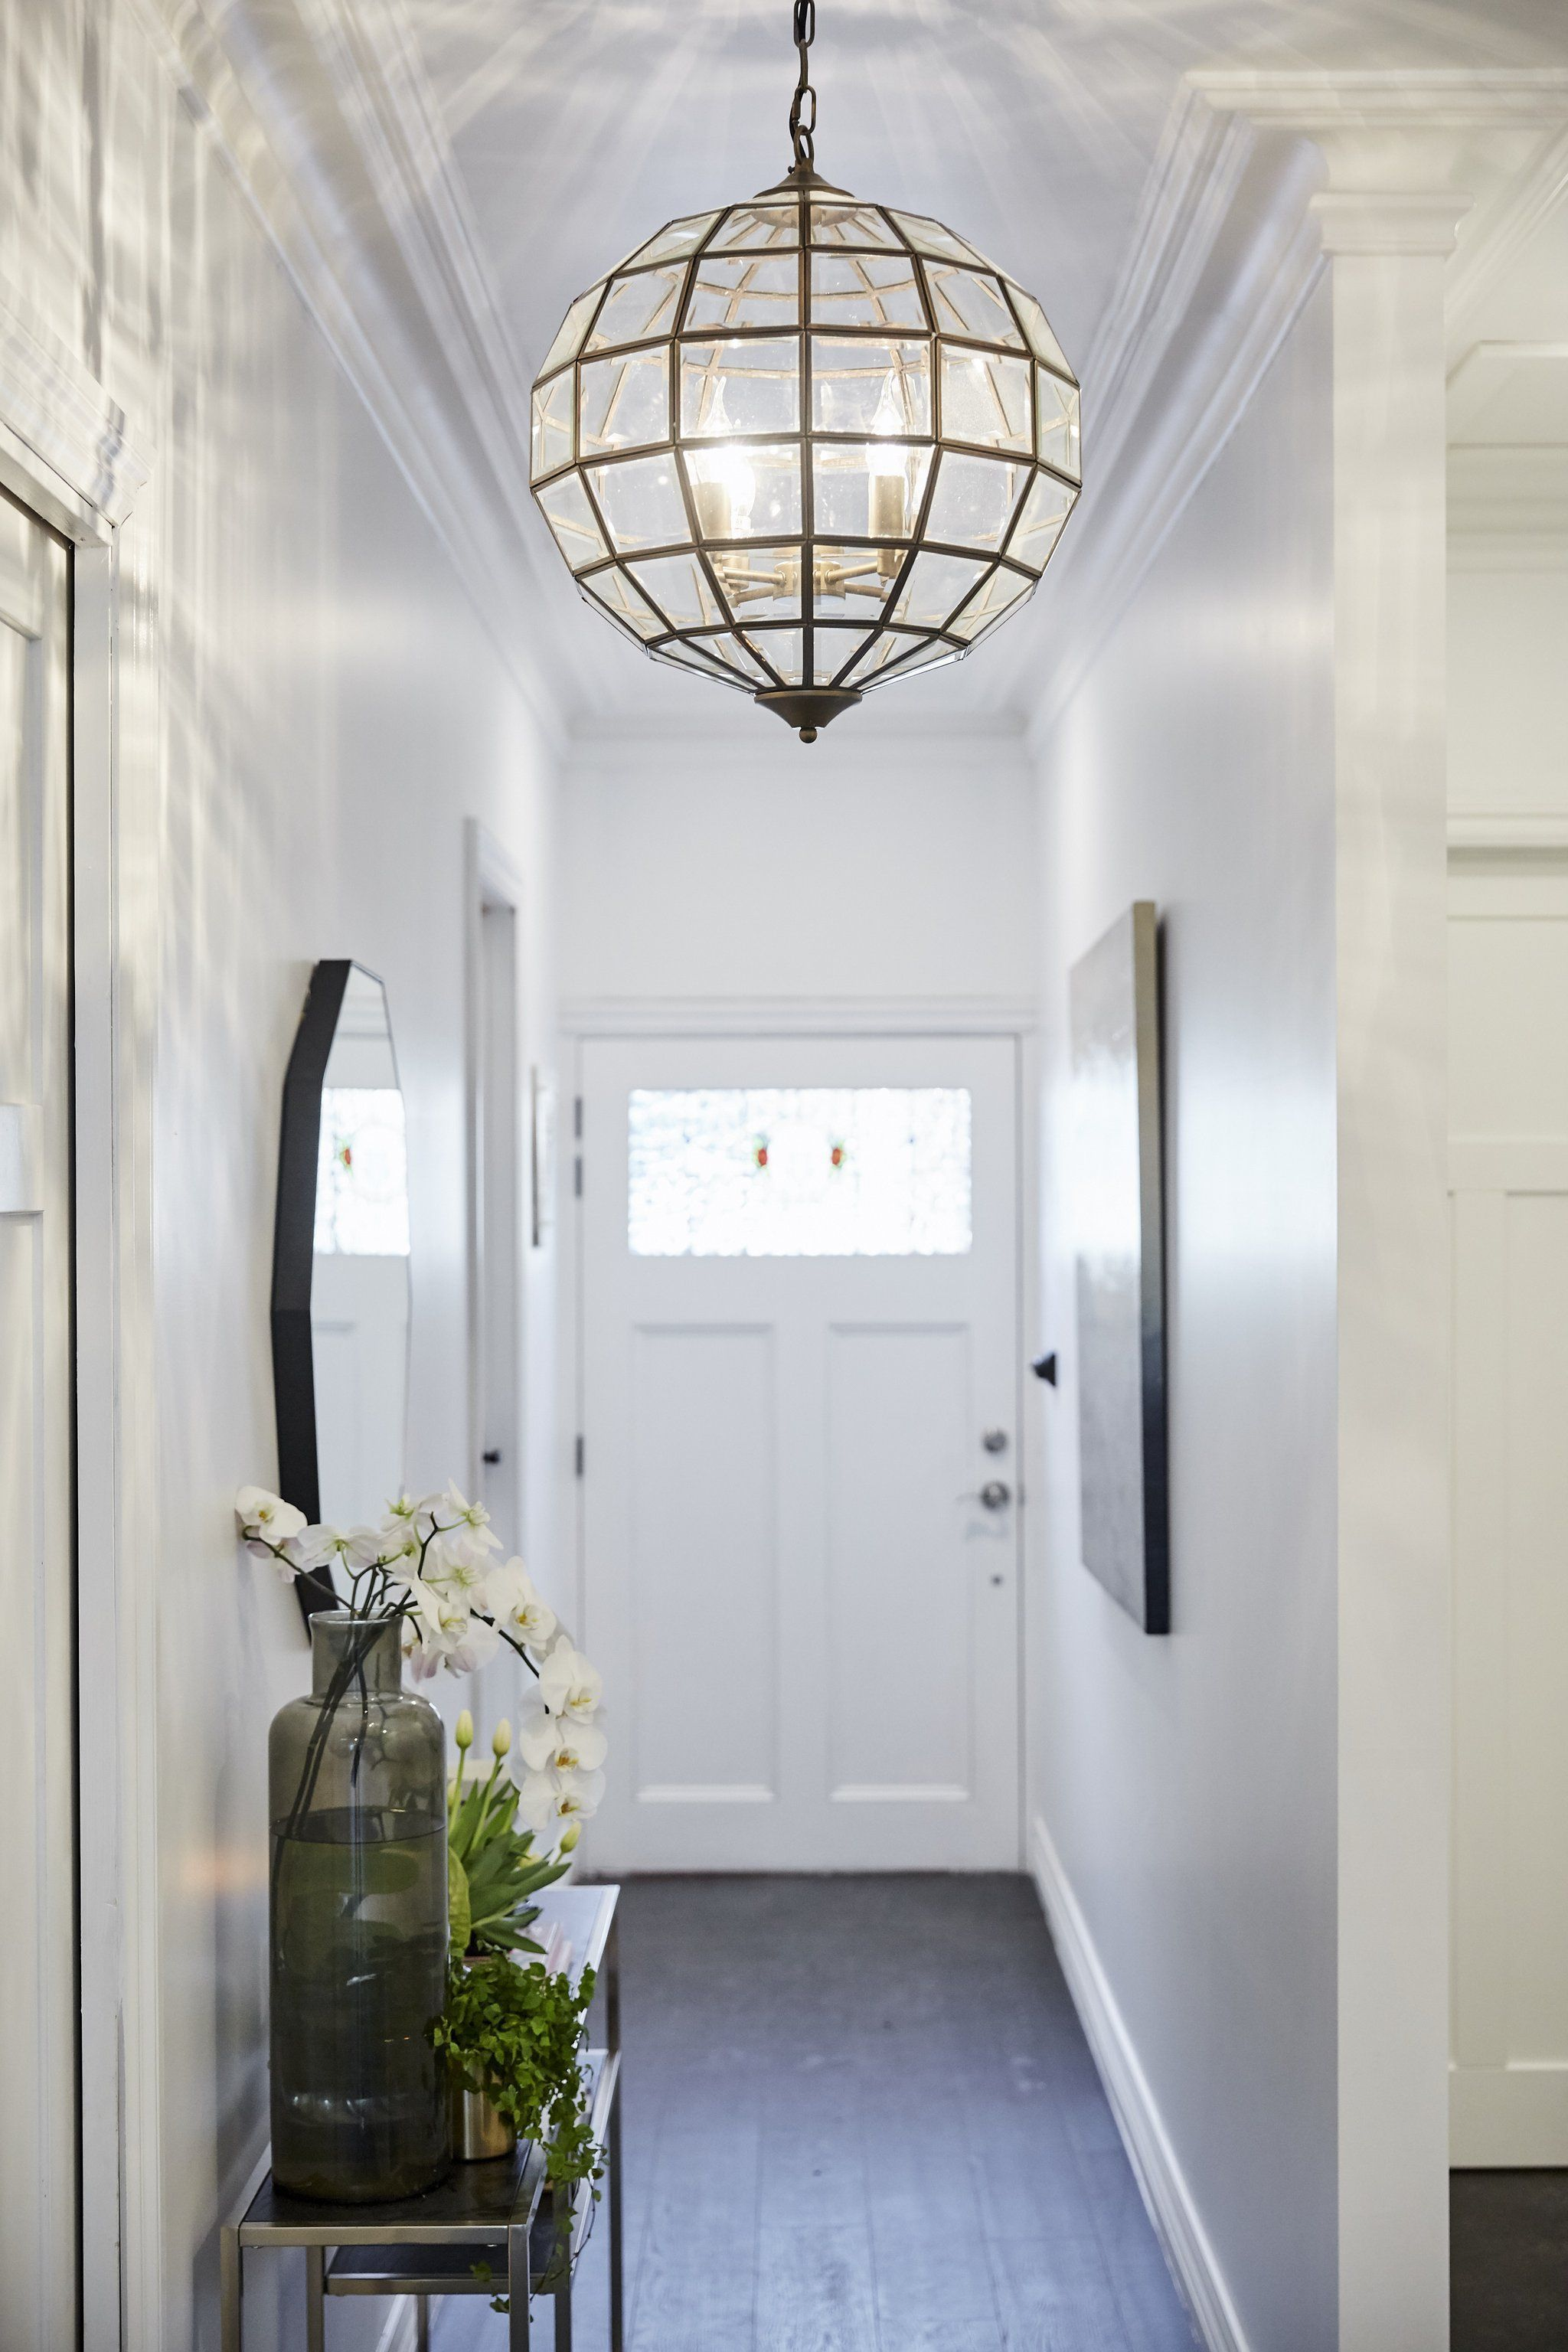 A Guide To Get The Best Out Of Your Hallway Decoration Hallway Lighting Small Entryways Small Hallways